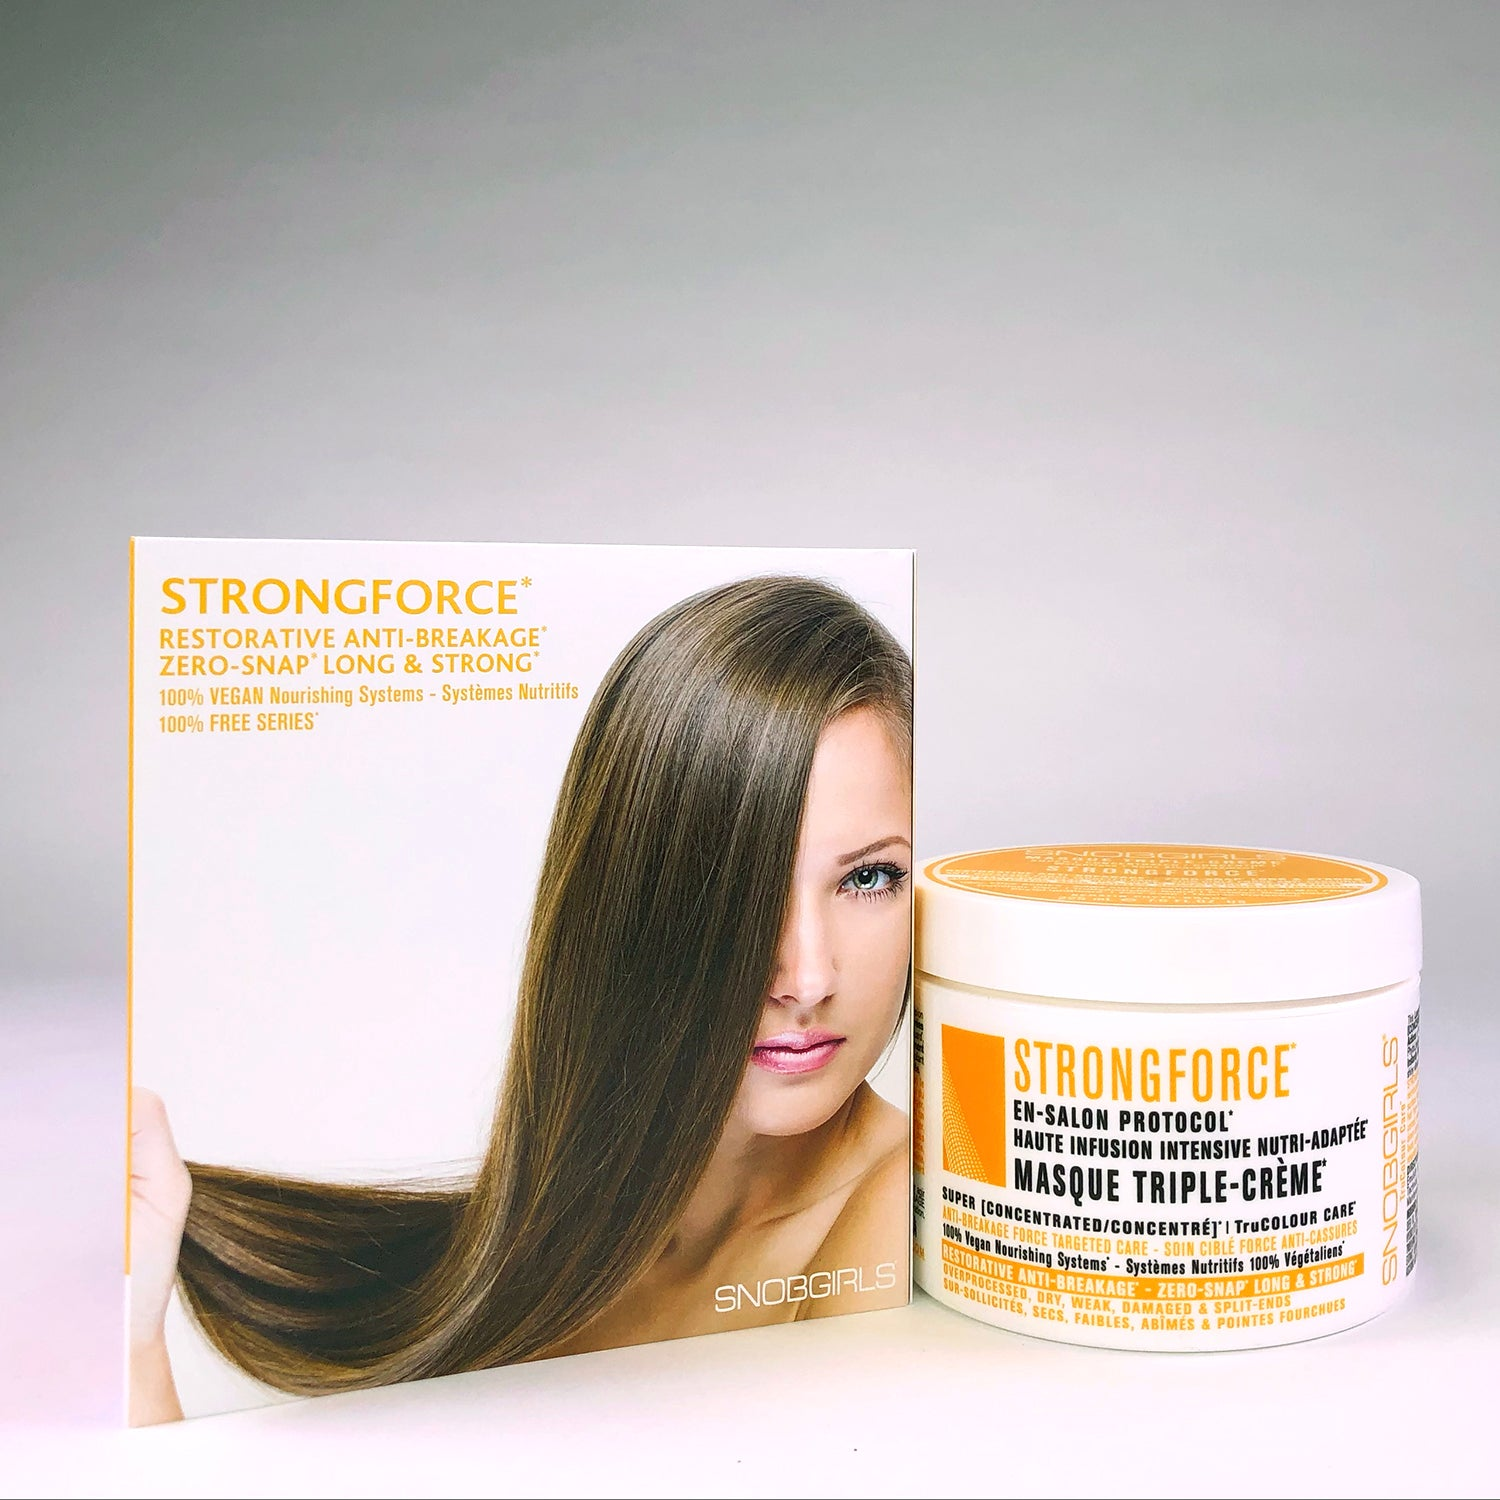 STRONGFORCE Restorative Anti-Breakage Triple-Creme Masque - SNOBGIRLS Canada